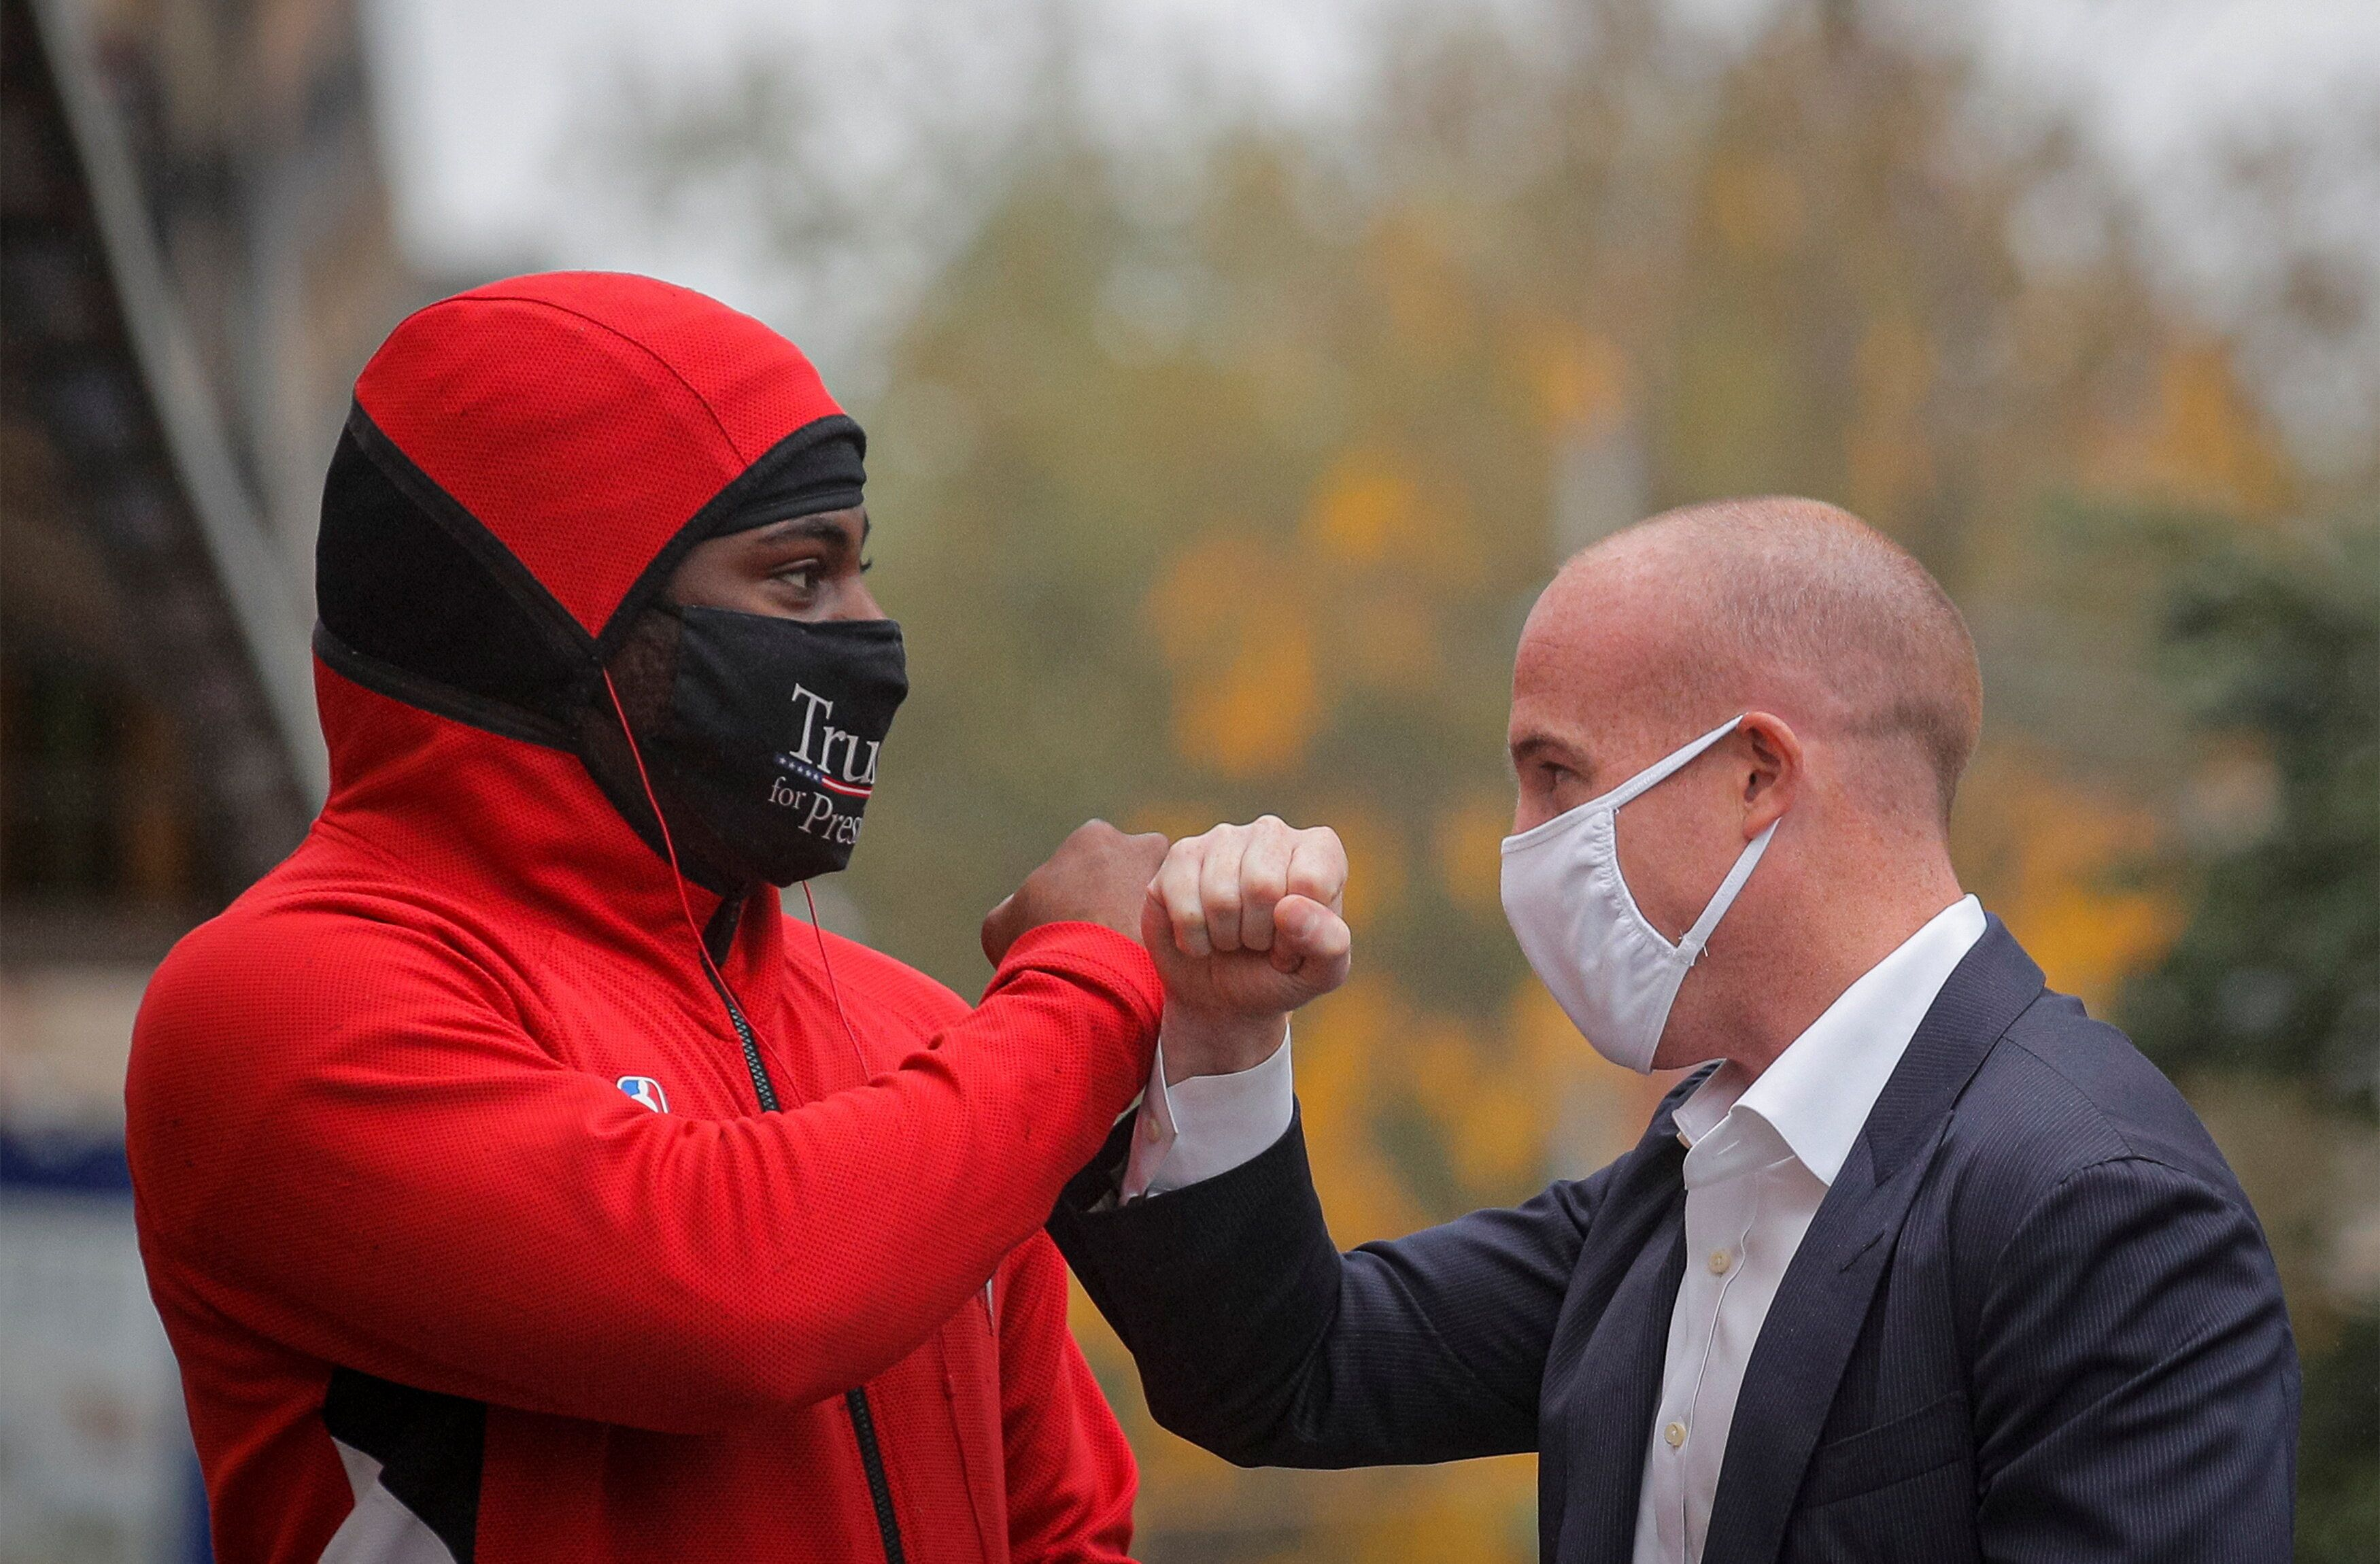 Rep. Max Rose (D-N.Y.), shown here greeting a supporter of President Donald Trump while on the campaign trail last month, rep